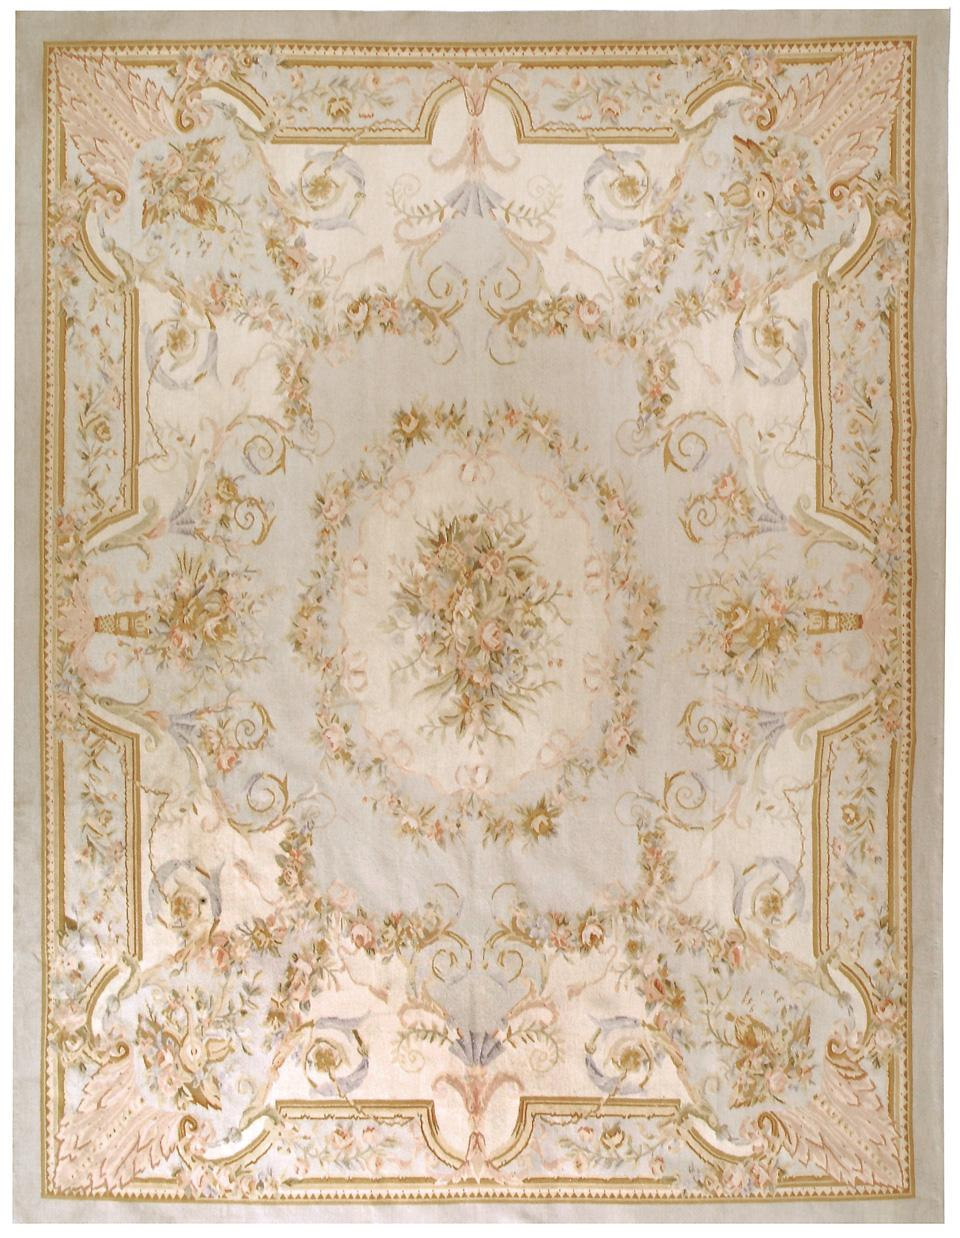 Soft pastel tones are a feature of Aubusson rugs, which were used as carpet art by the French aristocracy